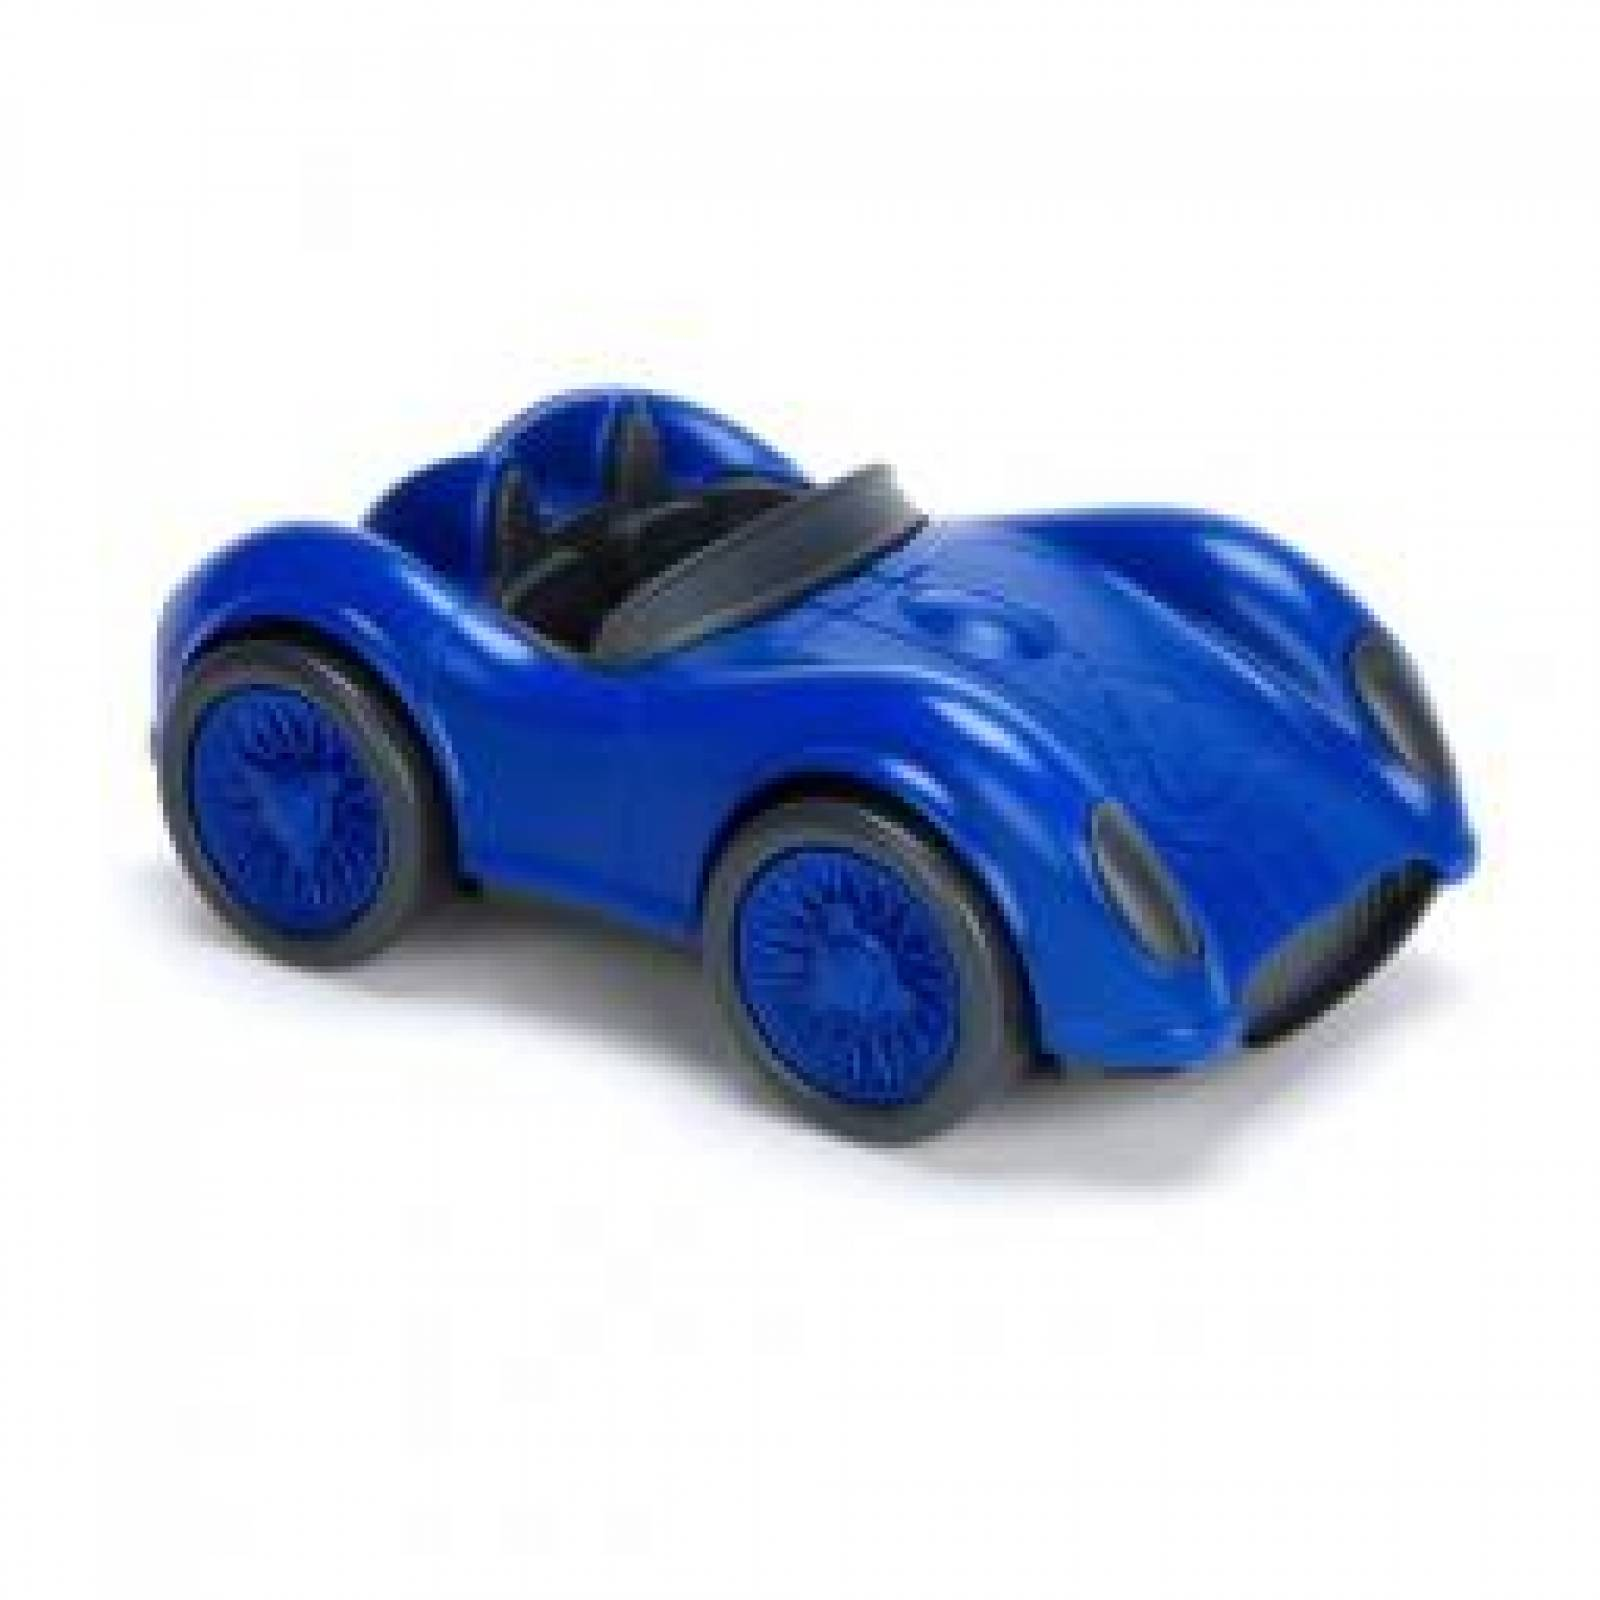 Blue Racing Car/ Race Car - Green Toys Recycled Plastic 3+ thumbnails